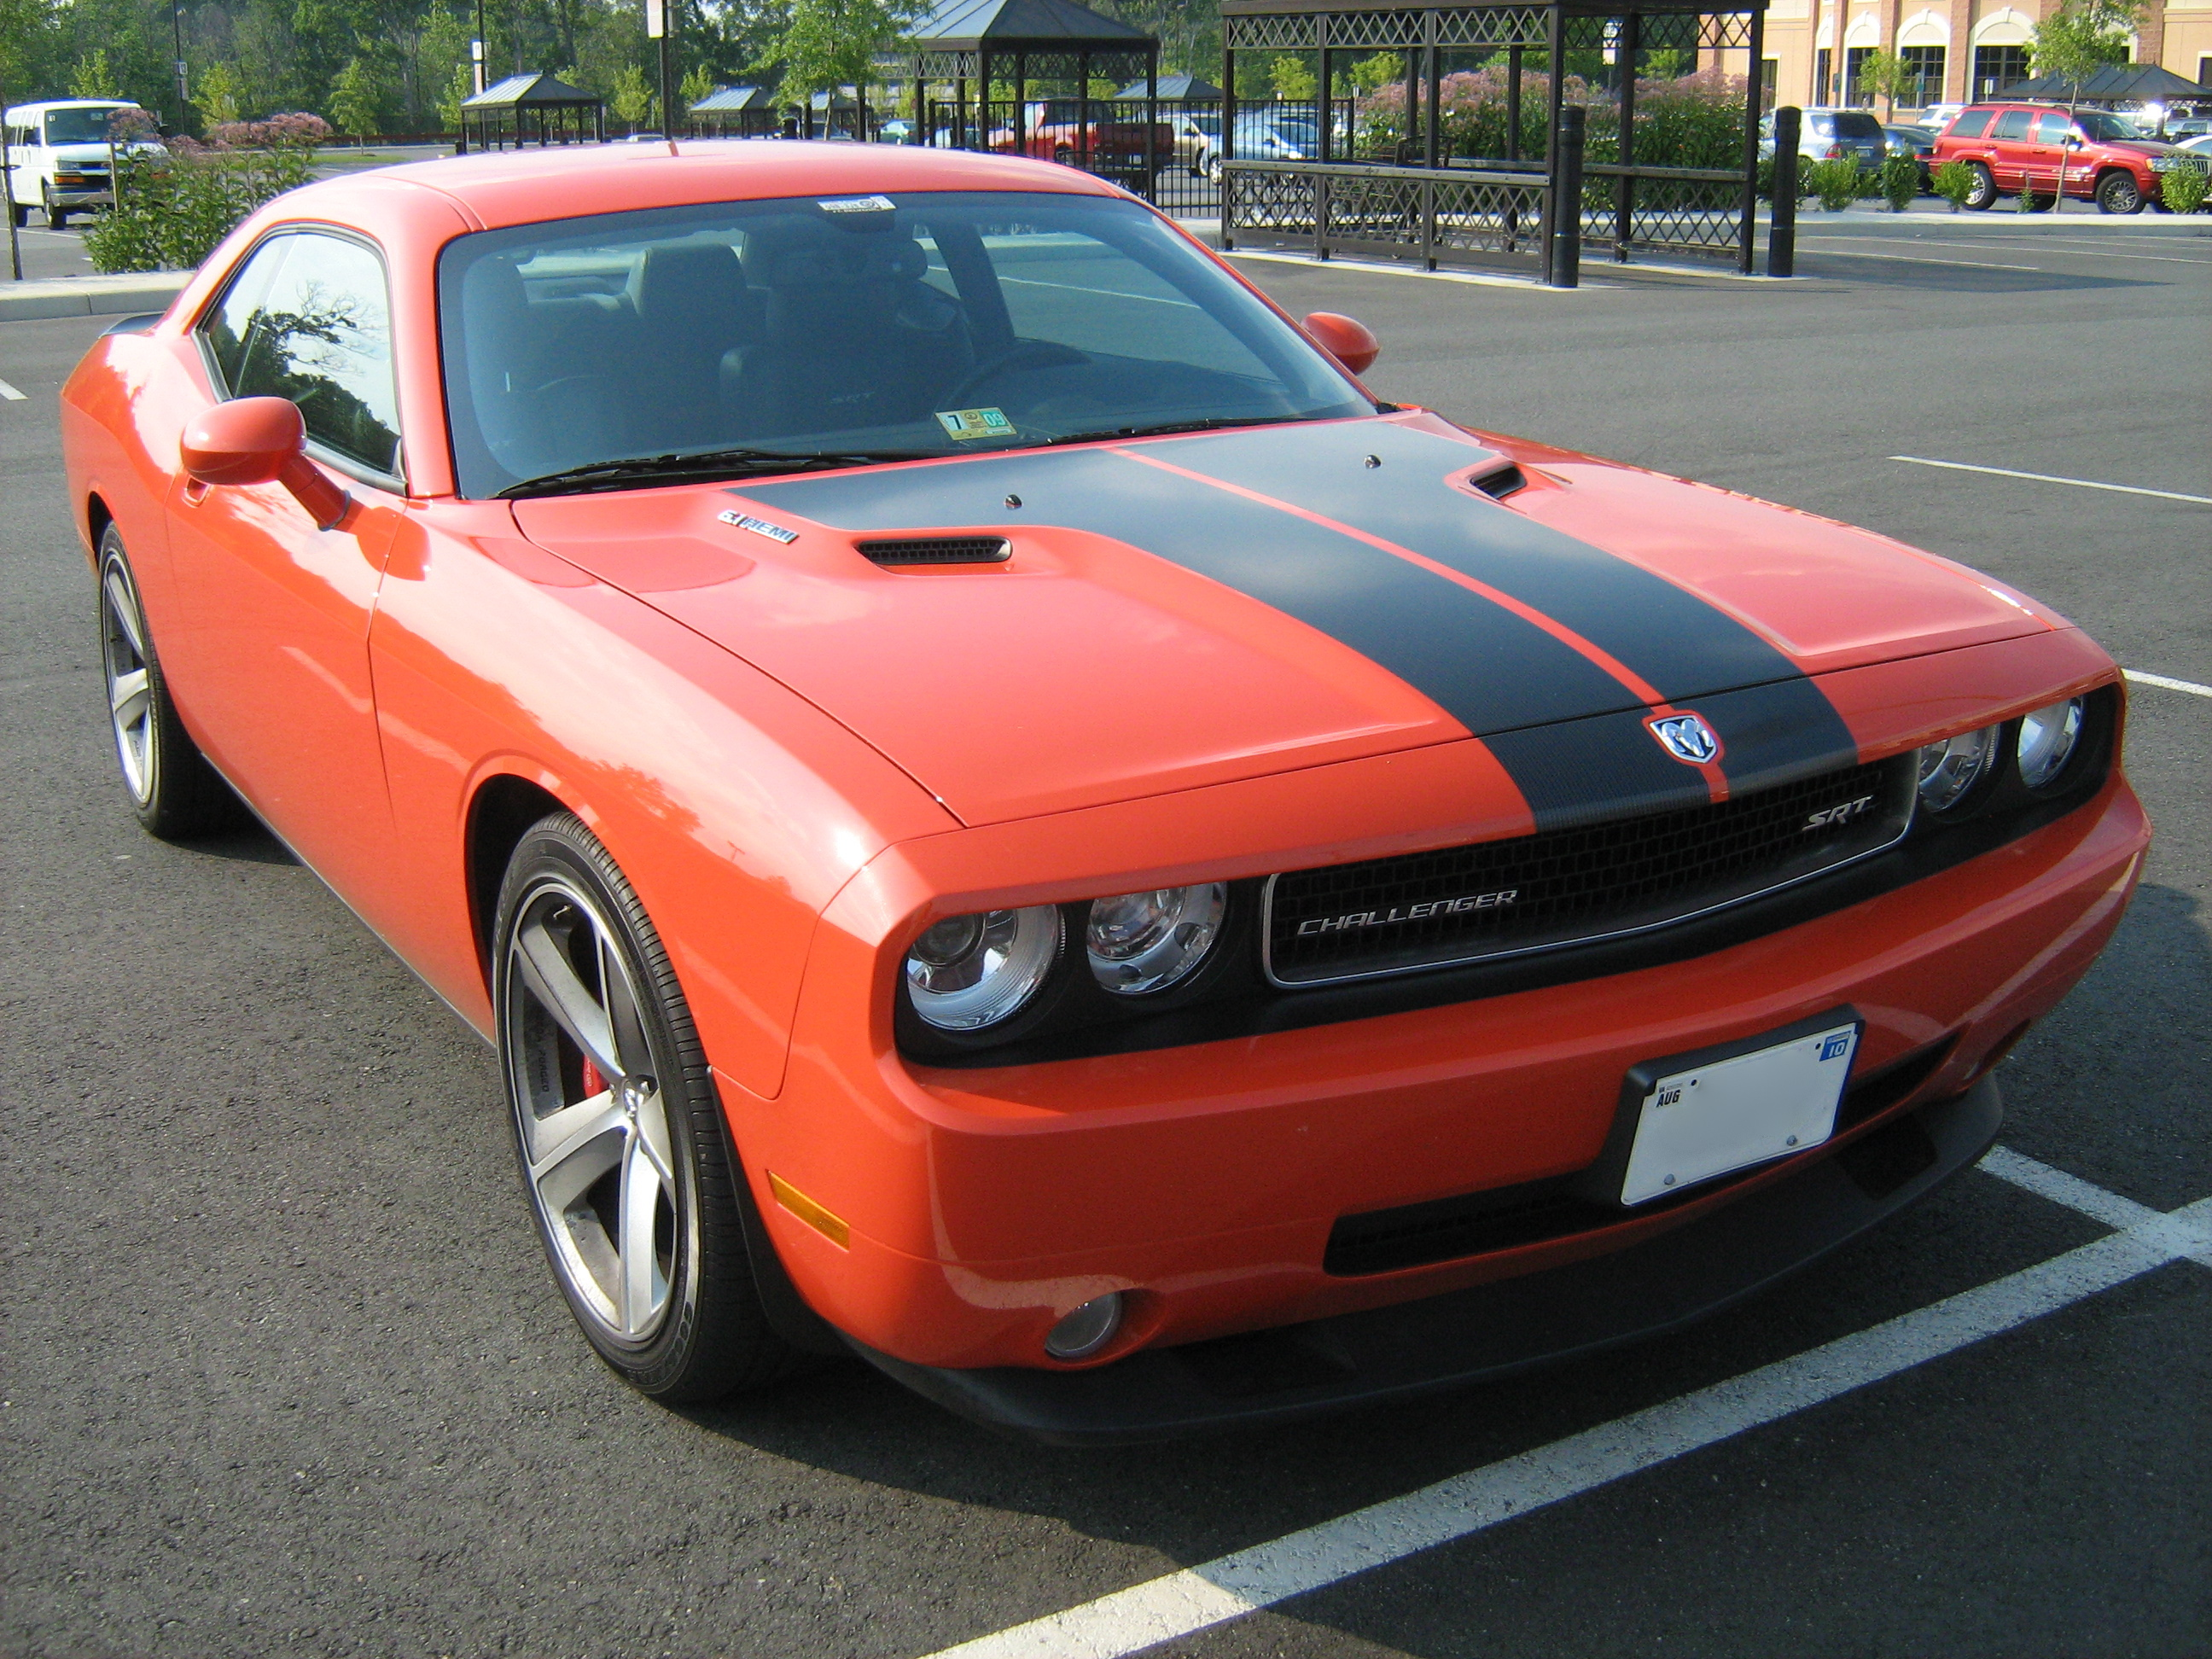 Image search: Dodge Challenger